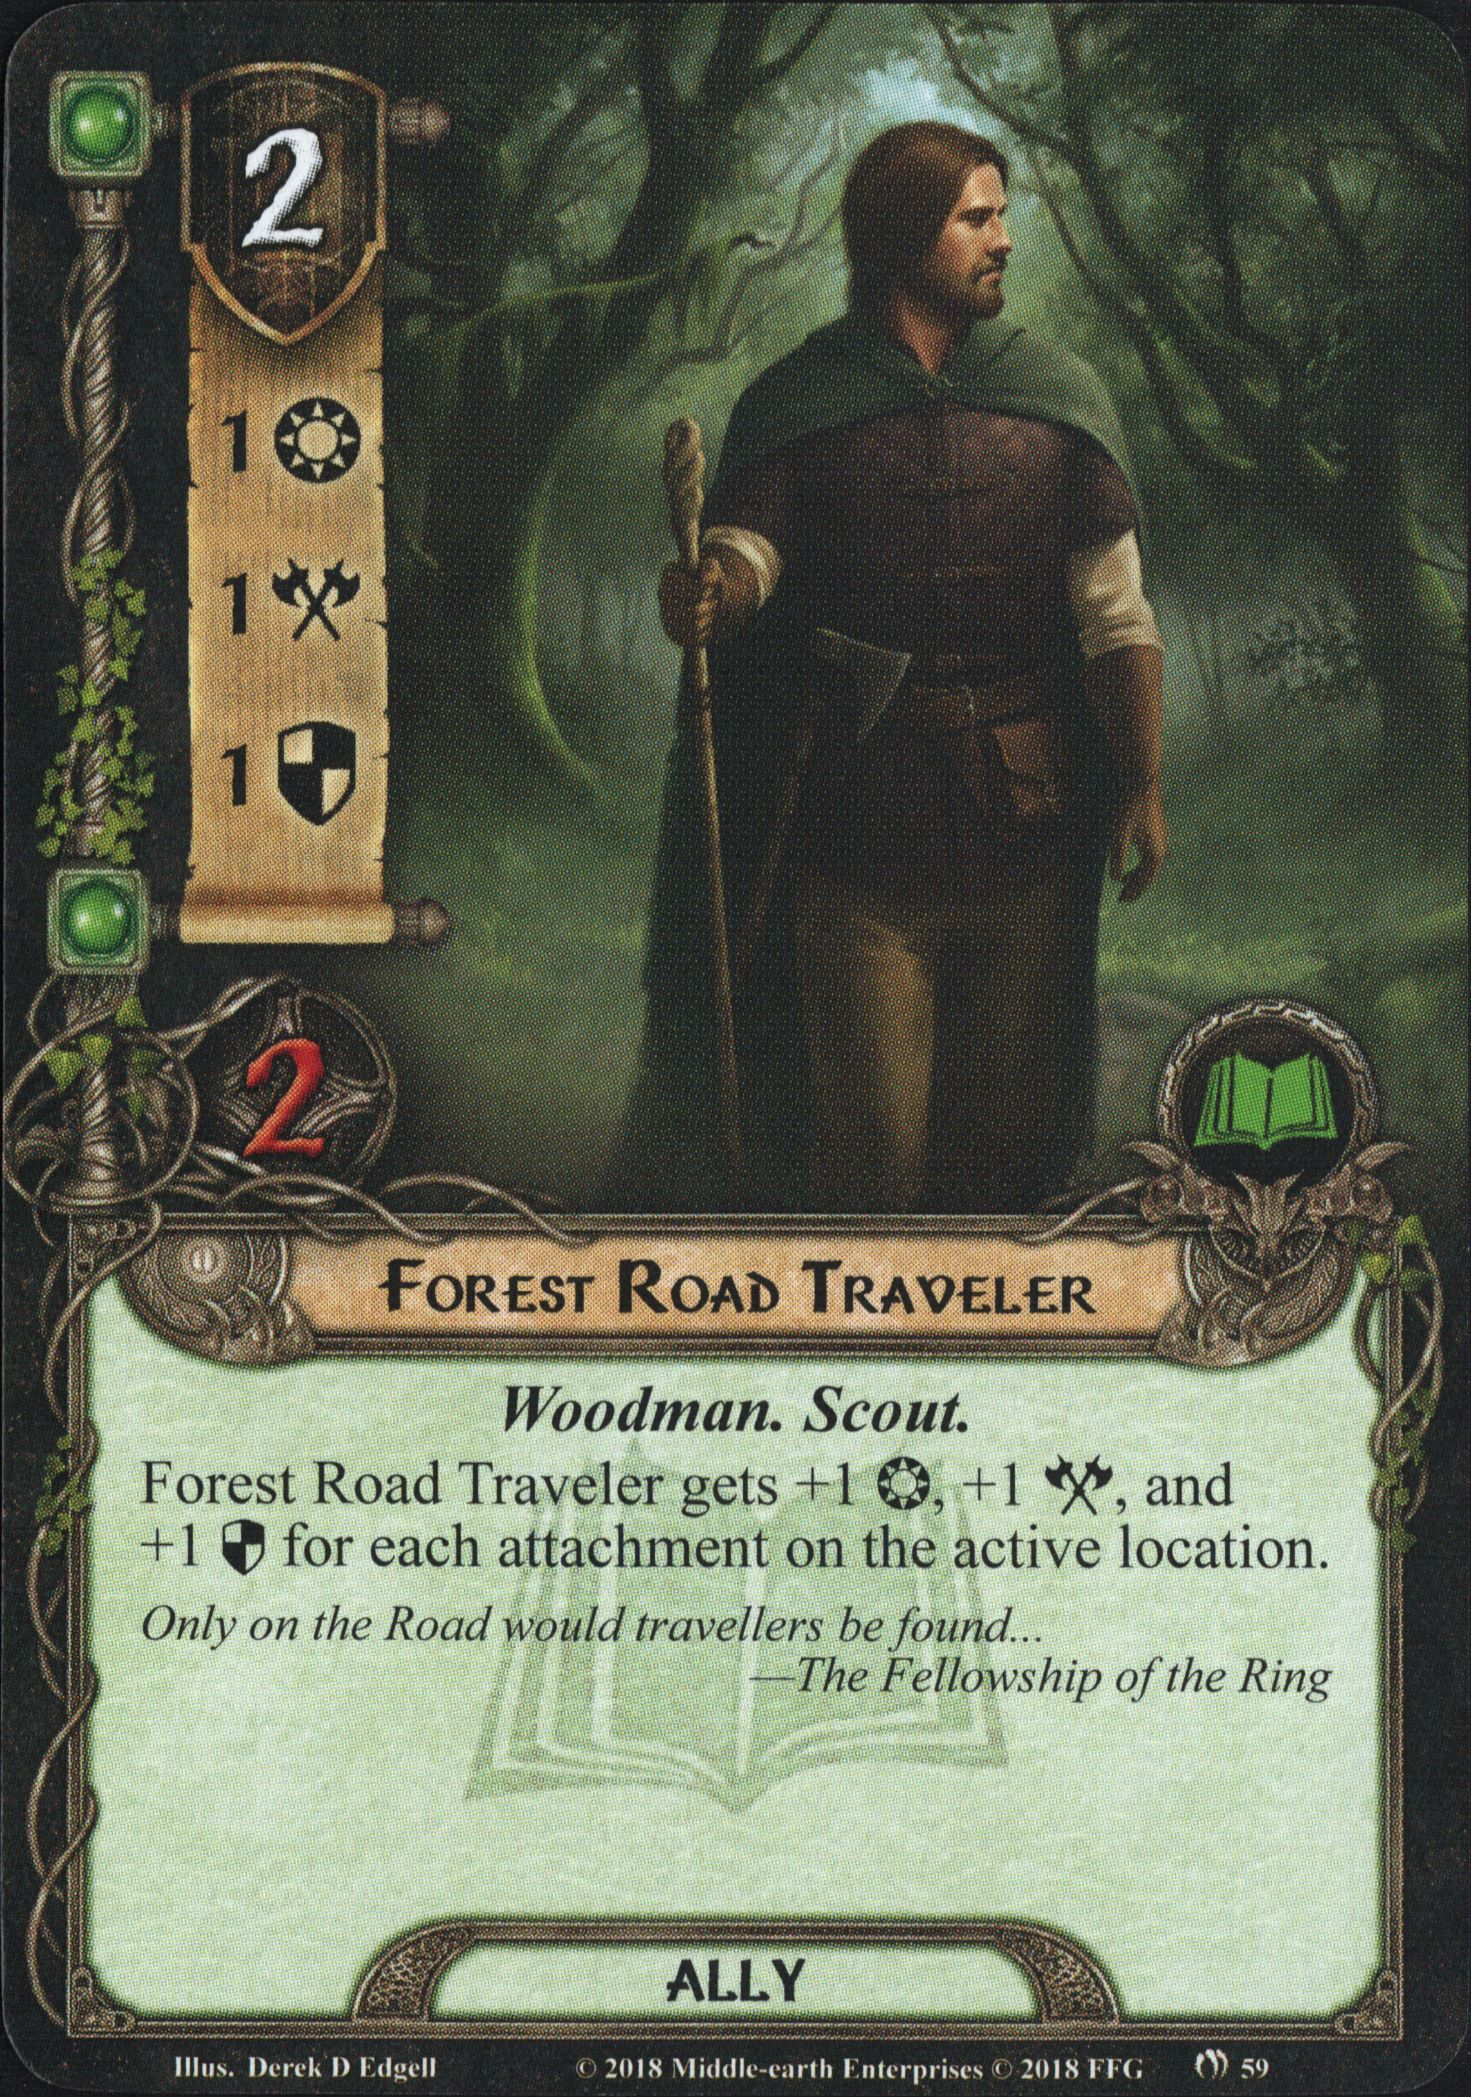 https://s3.amazonaws.com/hallofbeorn-resources/Images/Cards/Fire-in-the-Night/Forest-Road-Traveler.jpg